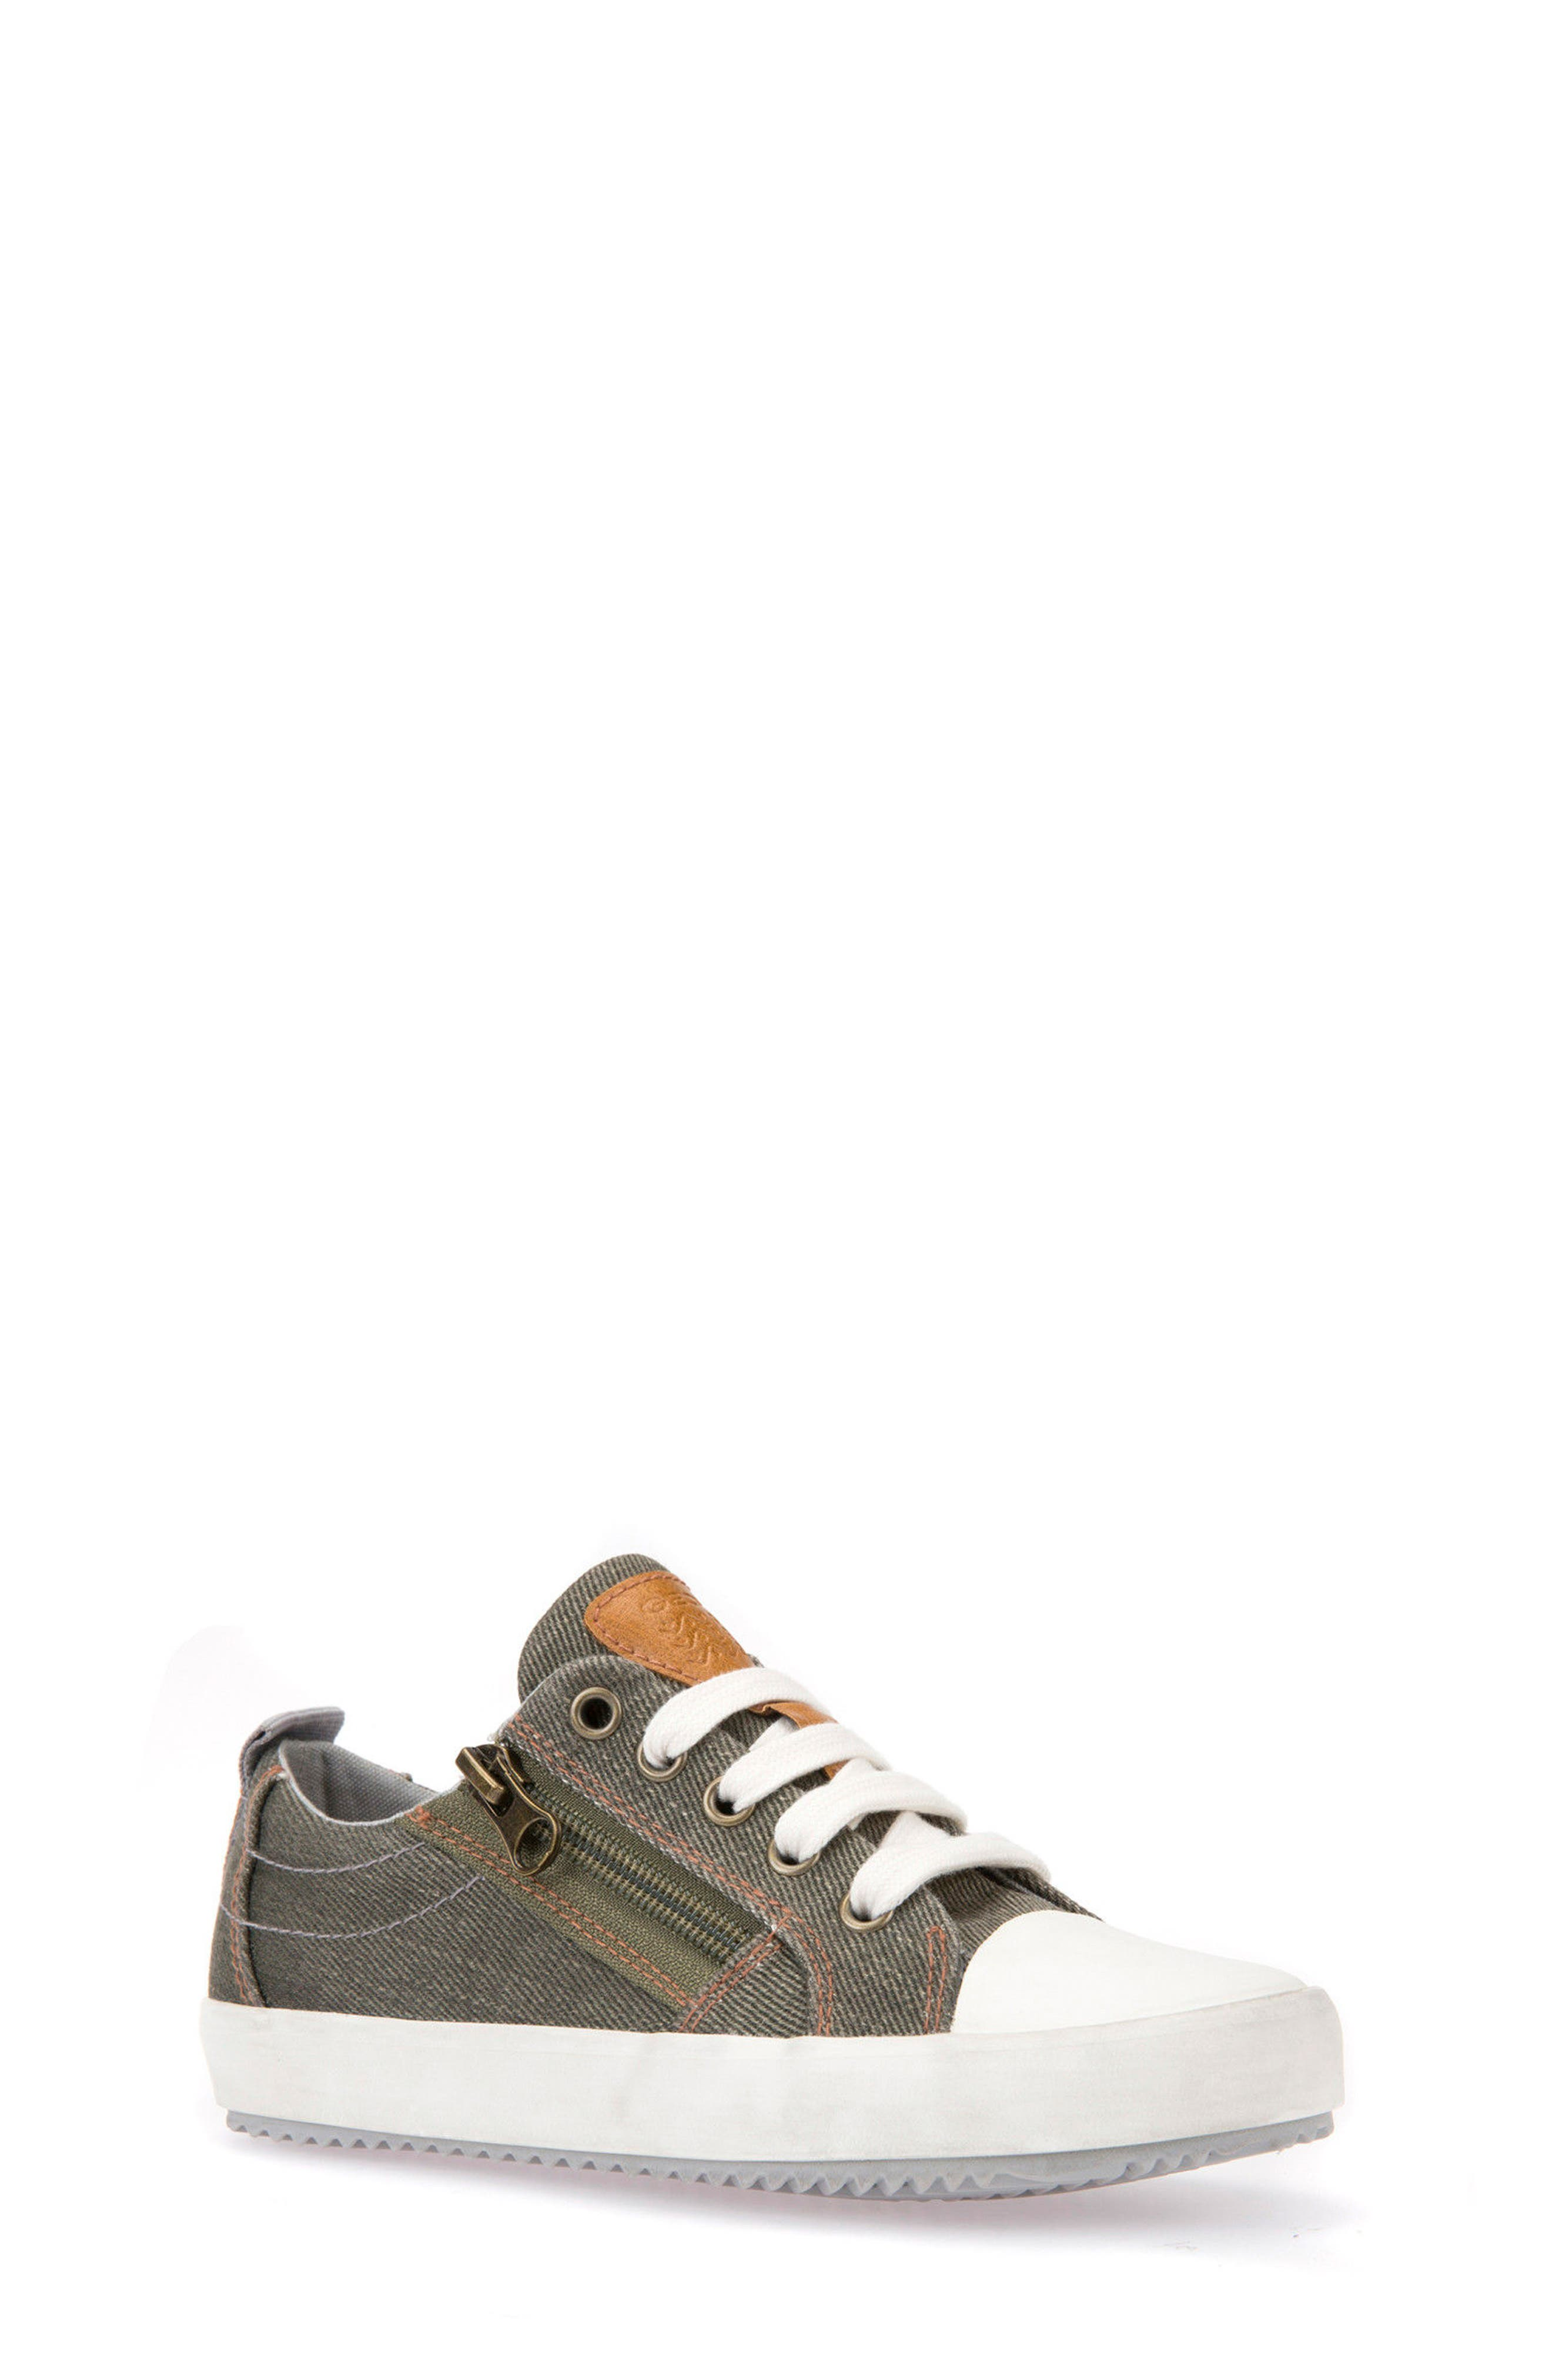 GEOX,                             Alonisso Low Top Sneaker,                             Main thumbnail 1, color,                             307